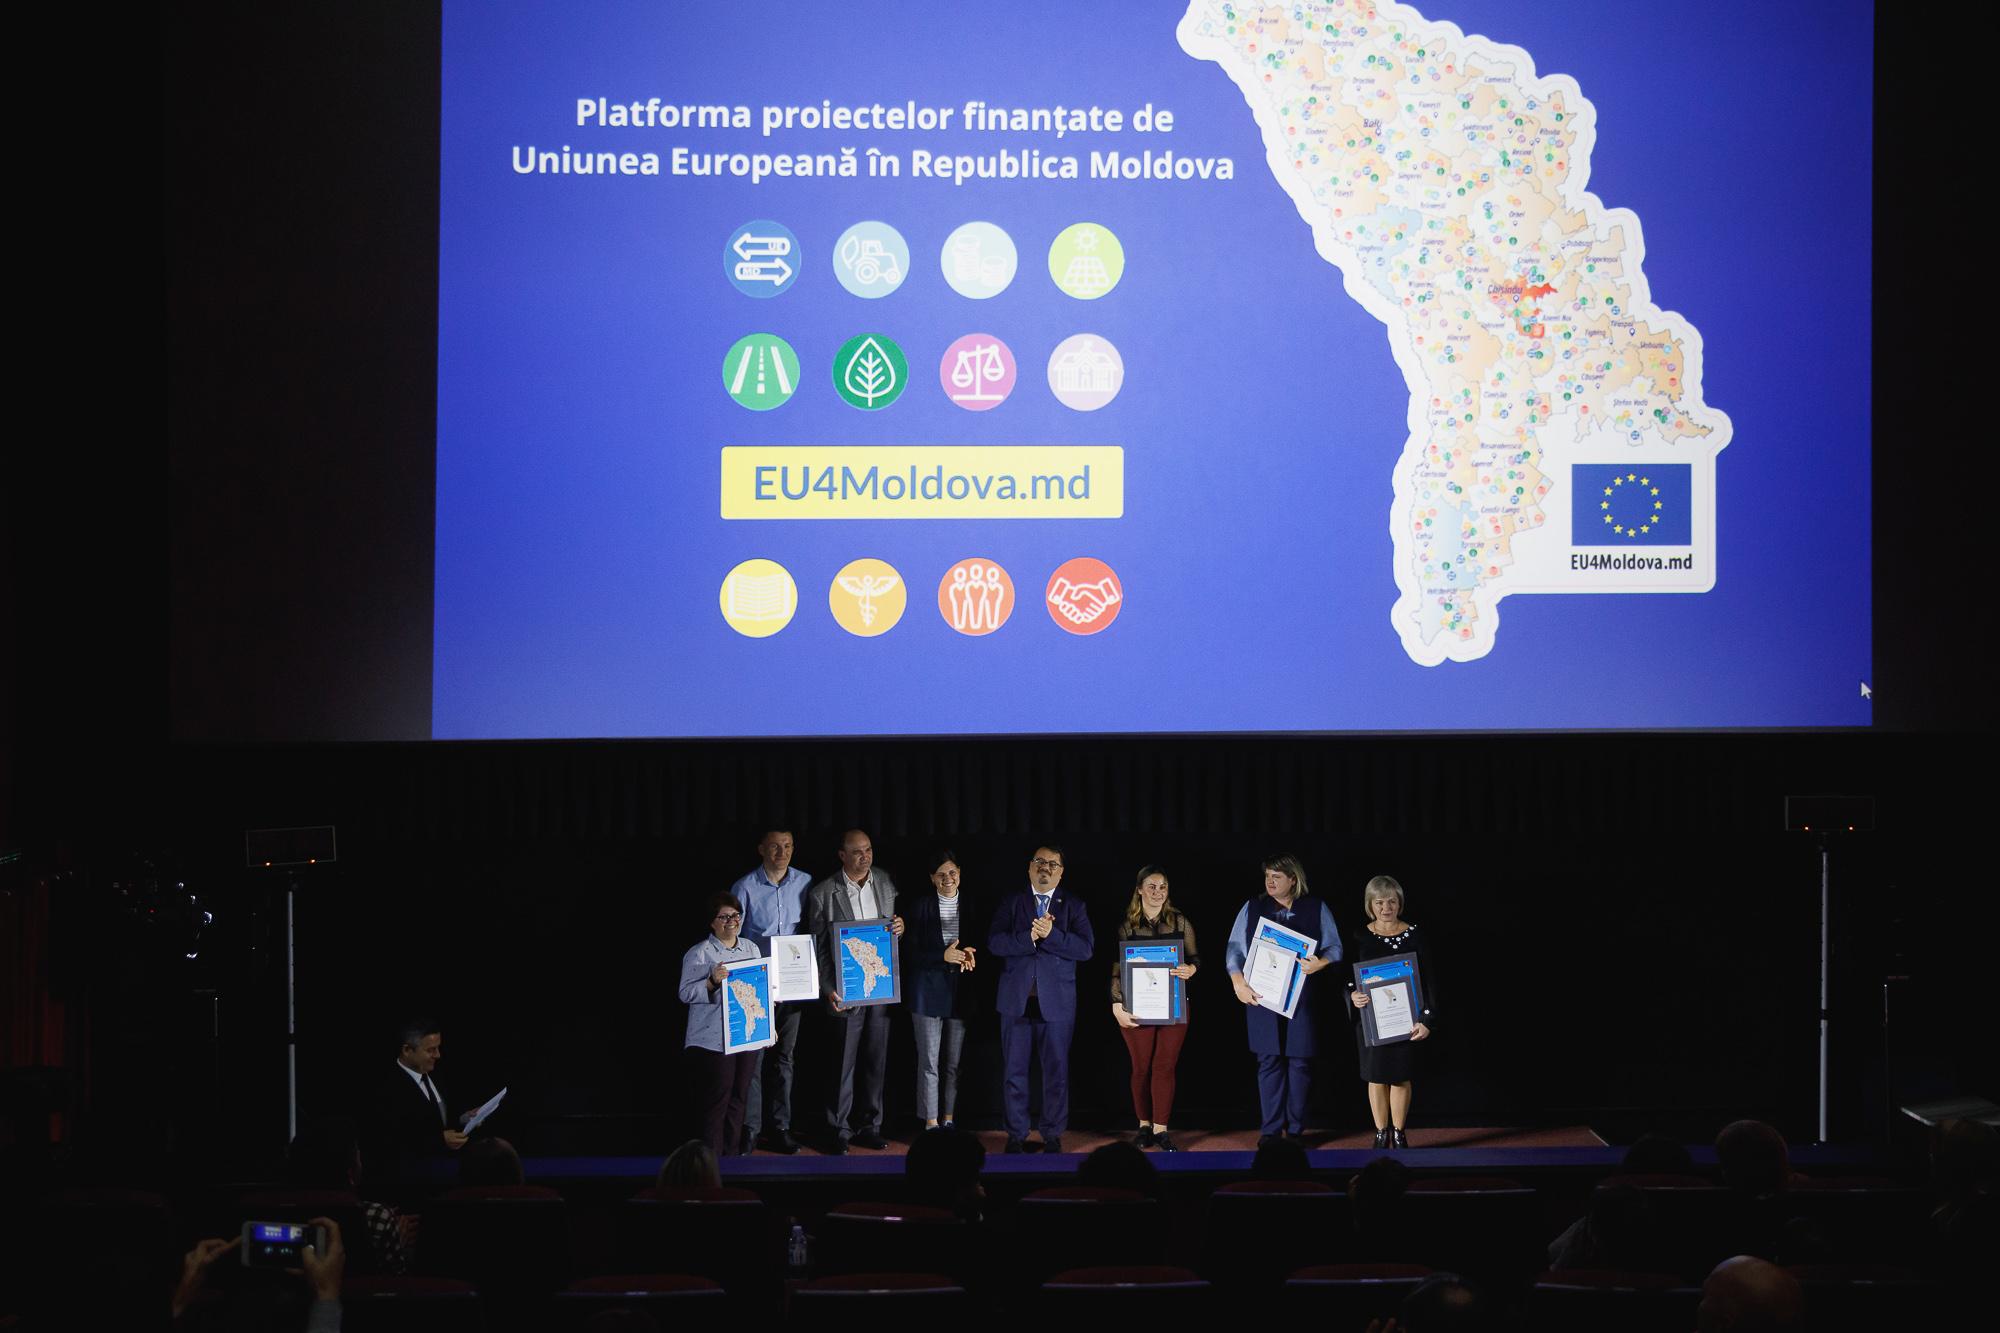 EU4Moldova.md – Platform of EU-funded projects launched in the Republic of Moldova